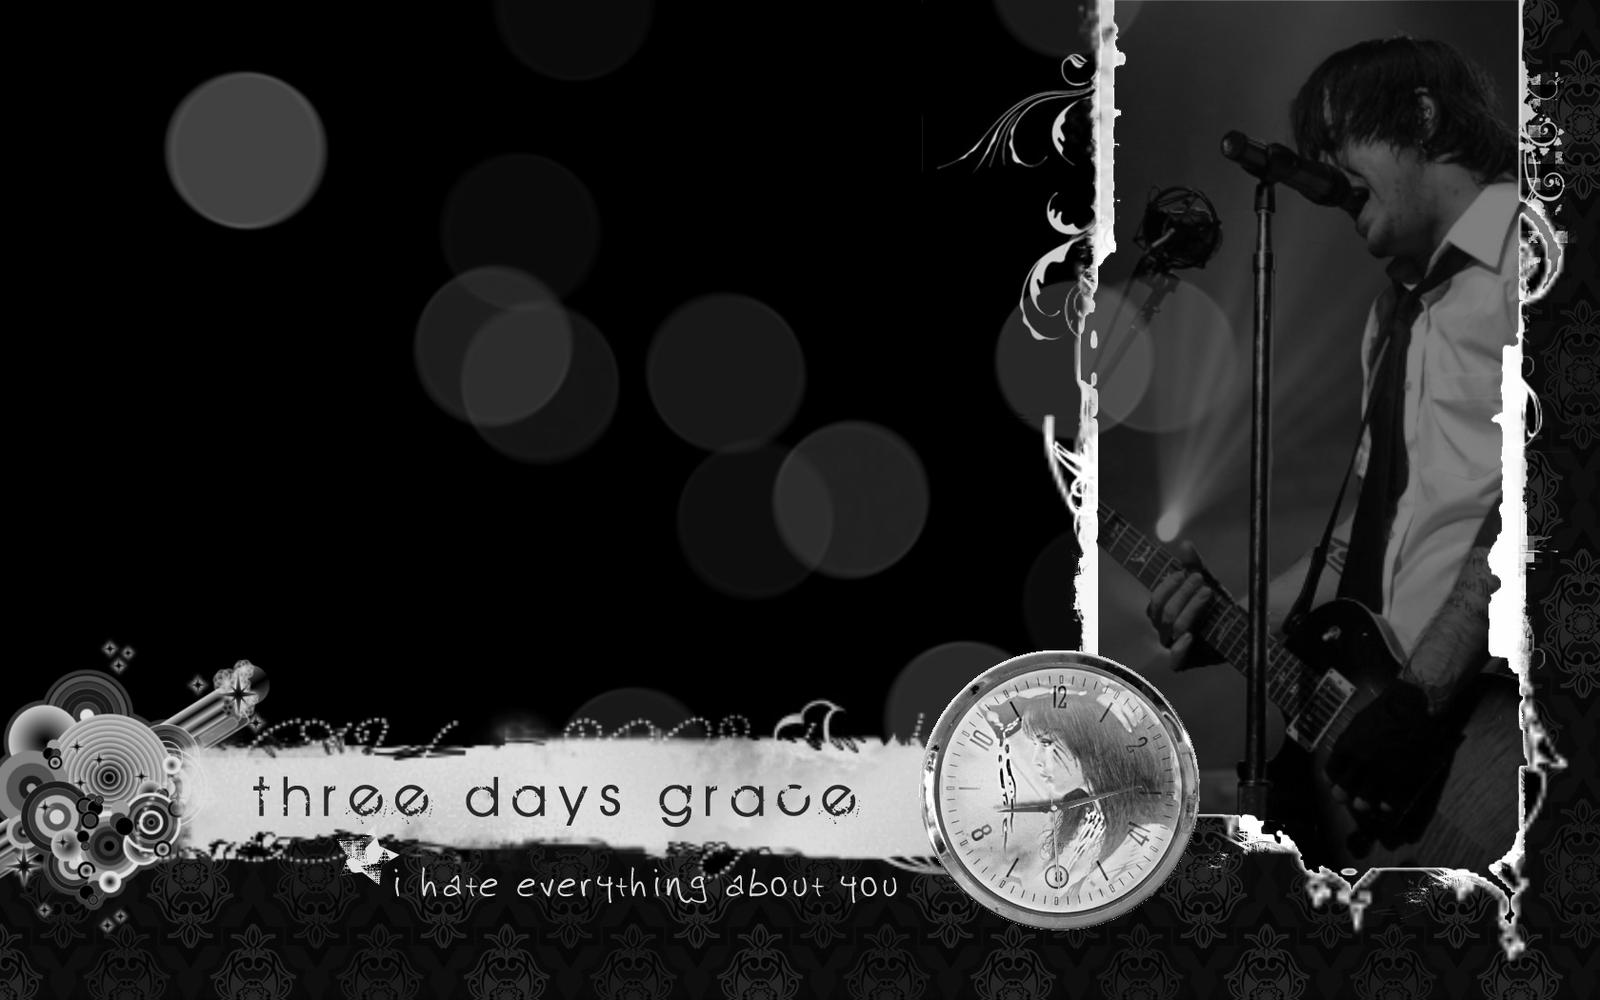 Three days grace wallpaper 2 by flatlace on deviantart - Three days grace wallpaper ...